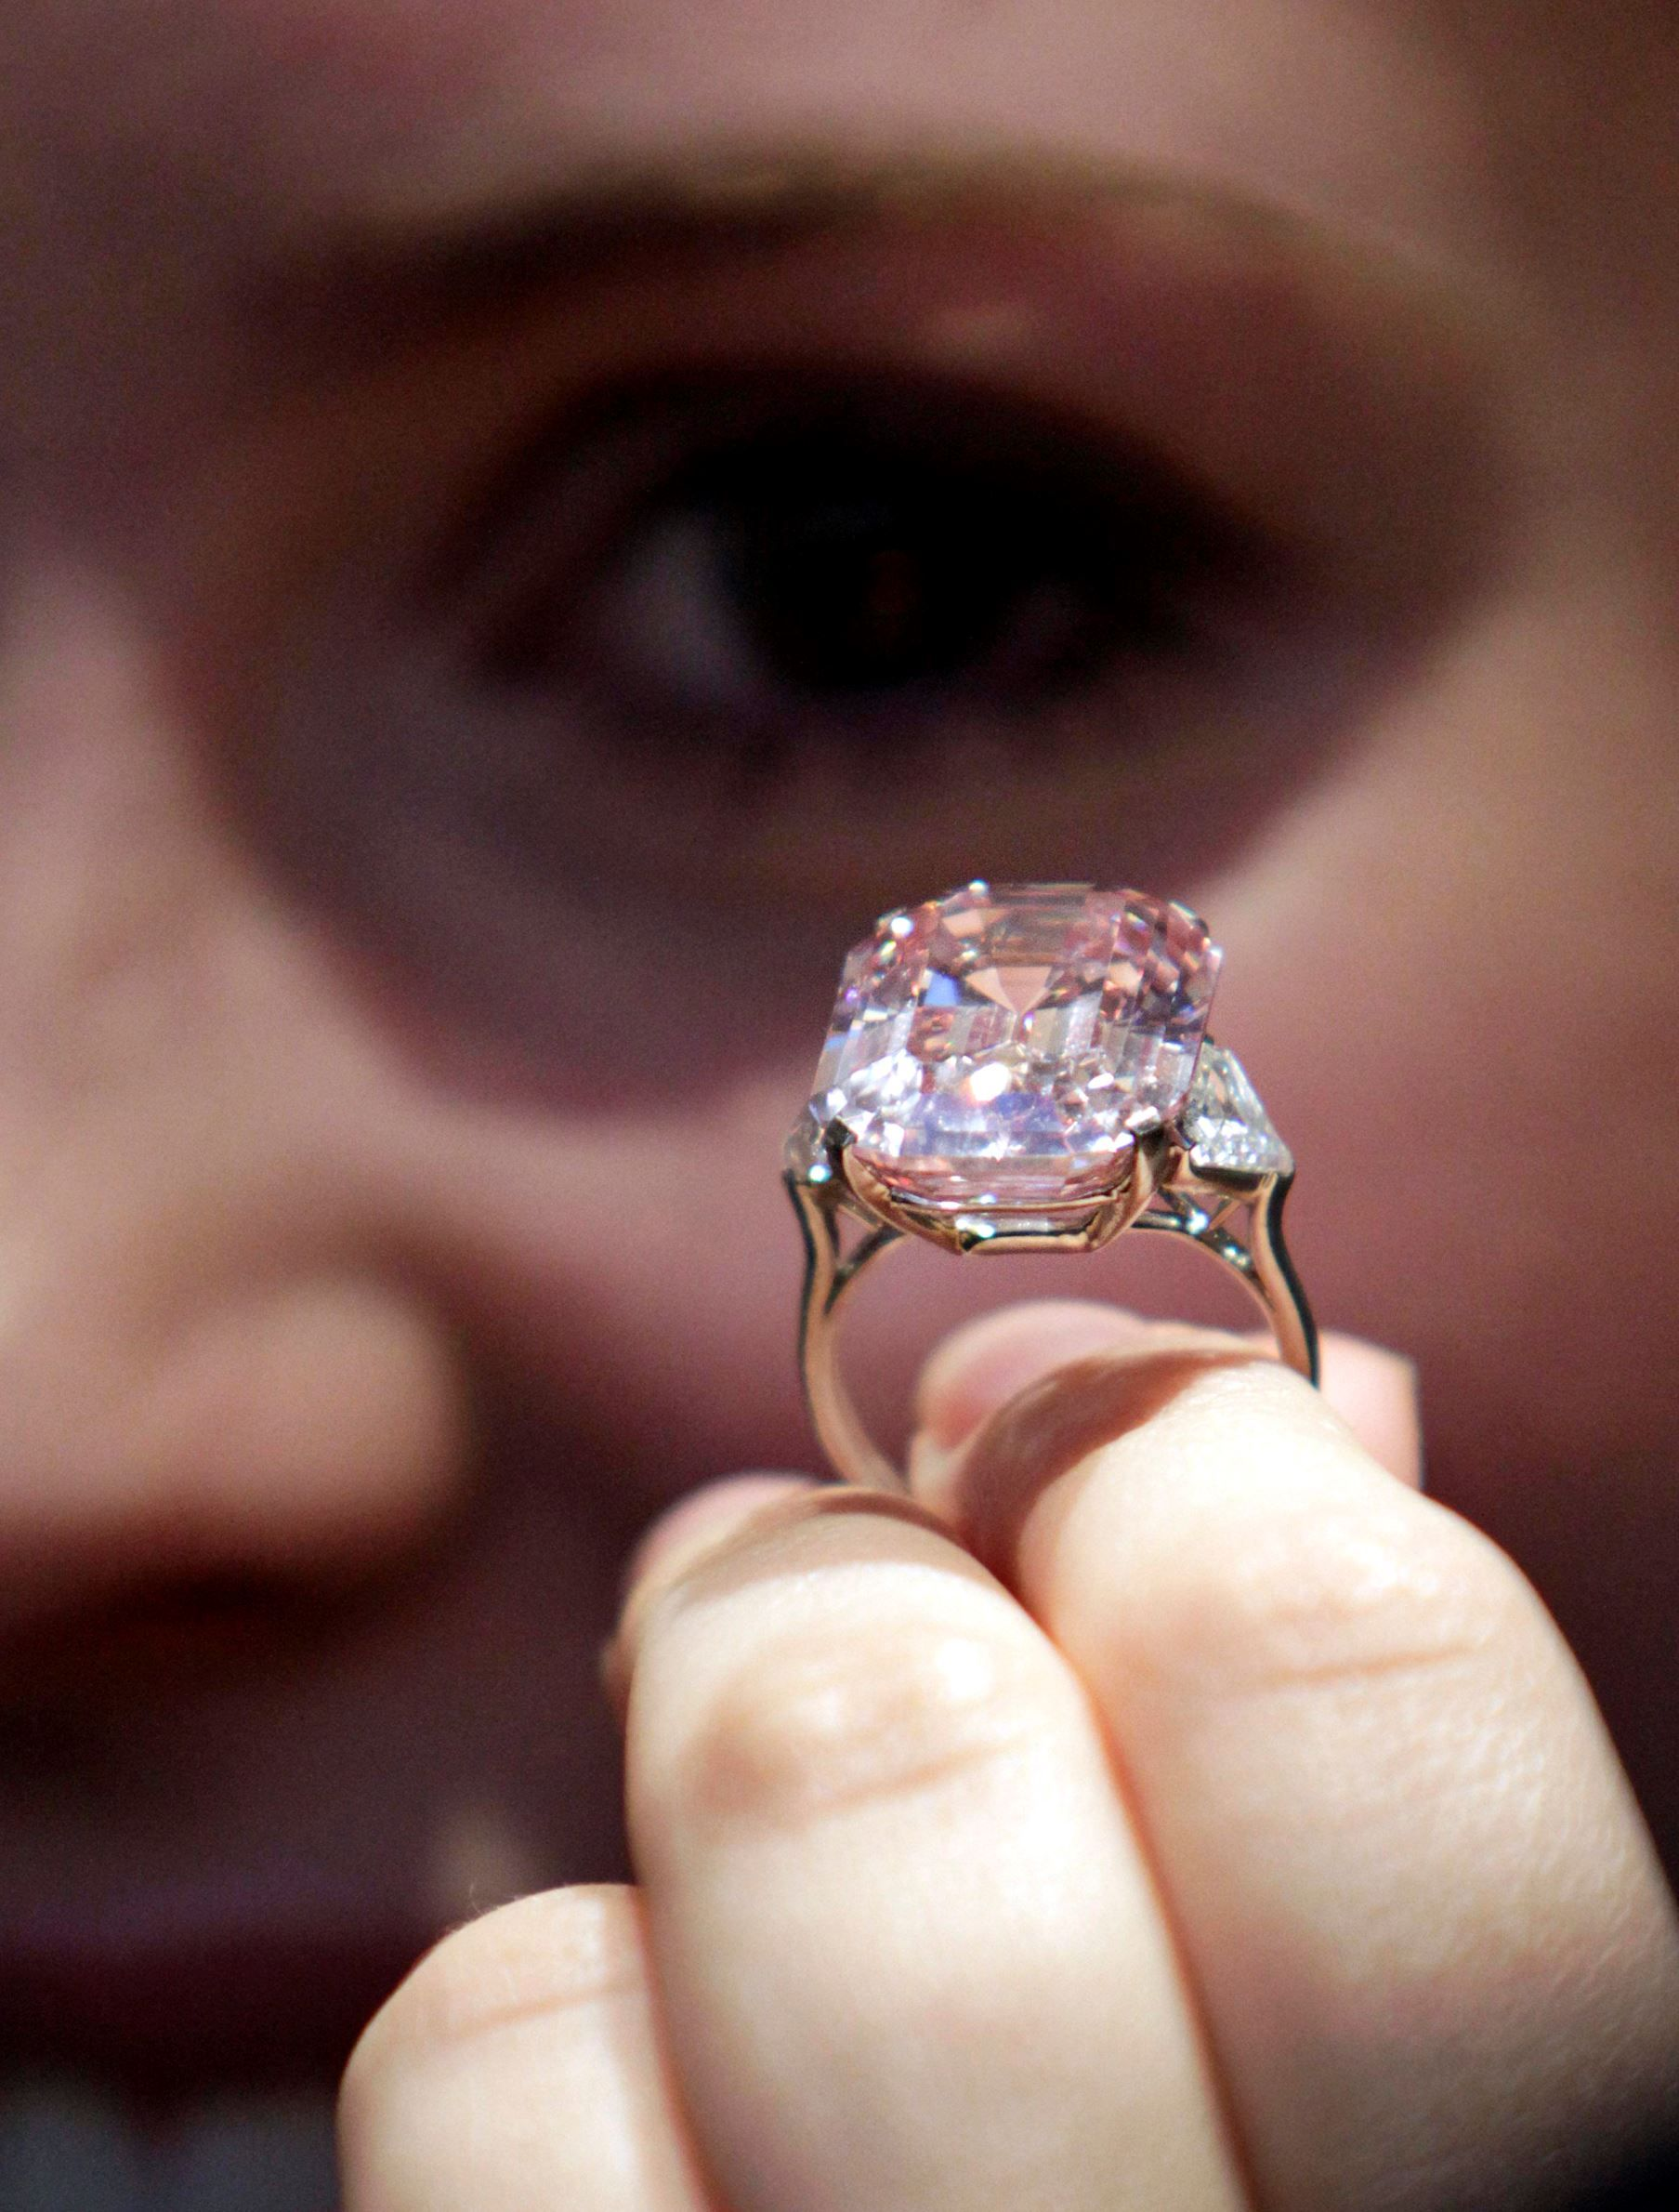 engagement image rings sotheby per a diamond is some sells this ring bling million auction for s now carat preview